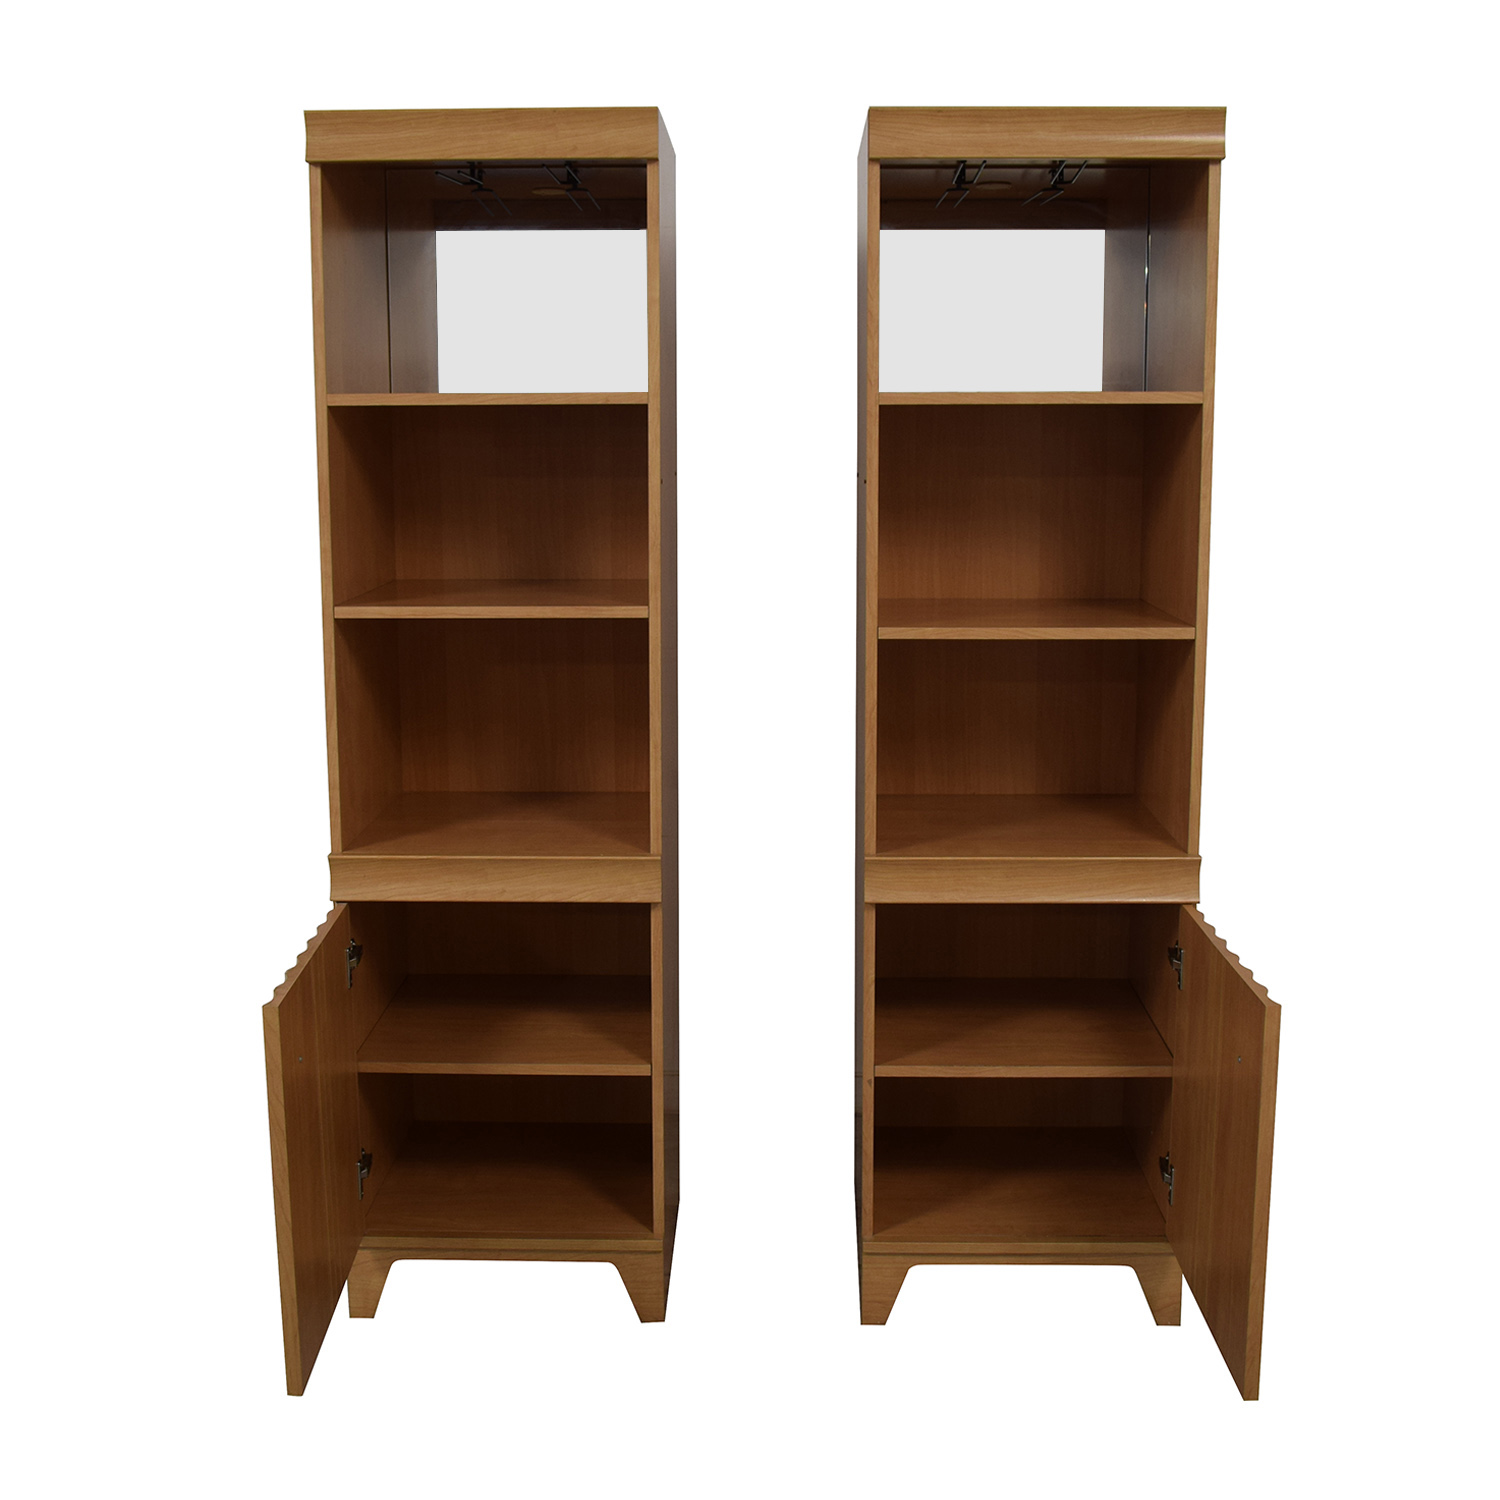 Italian Made Mirrored Bookcases Bookcases & Shelving